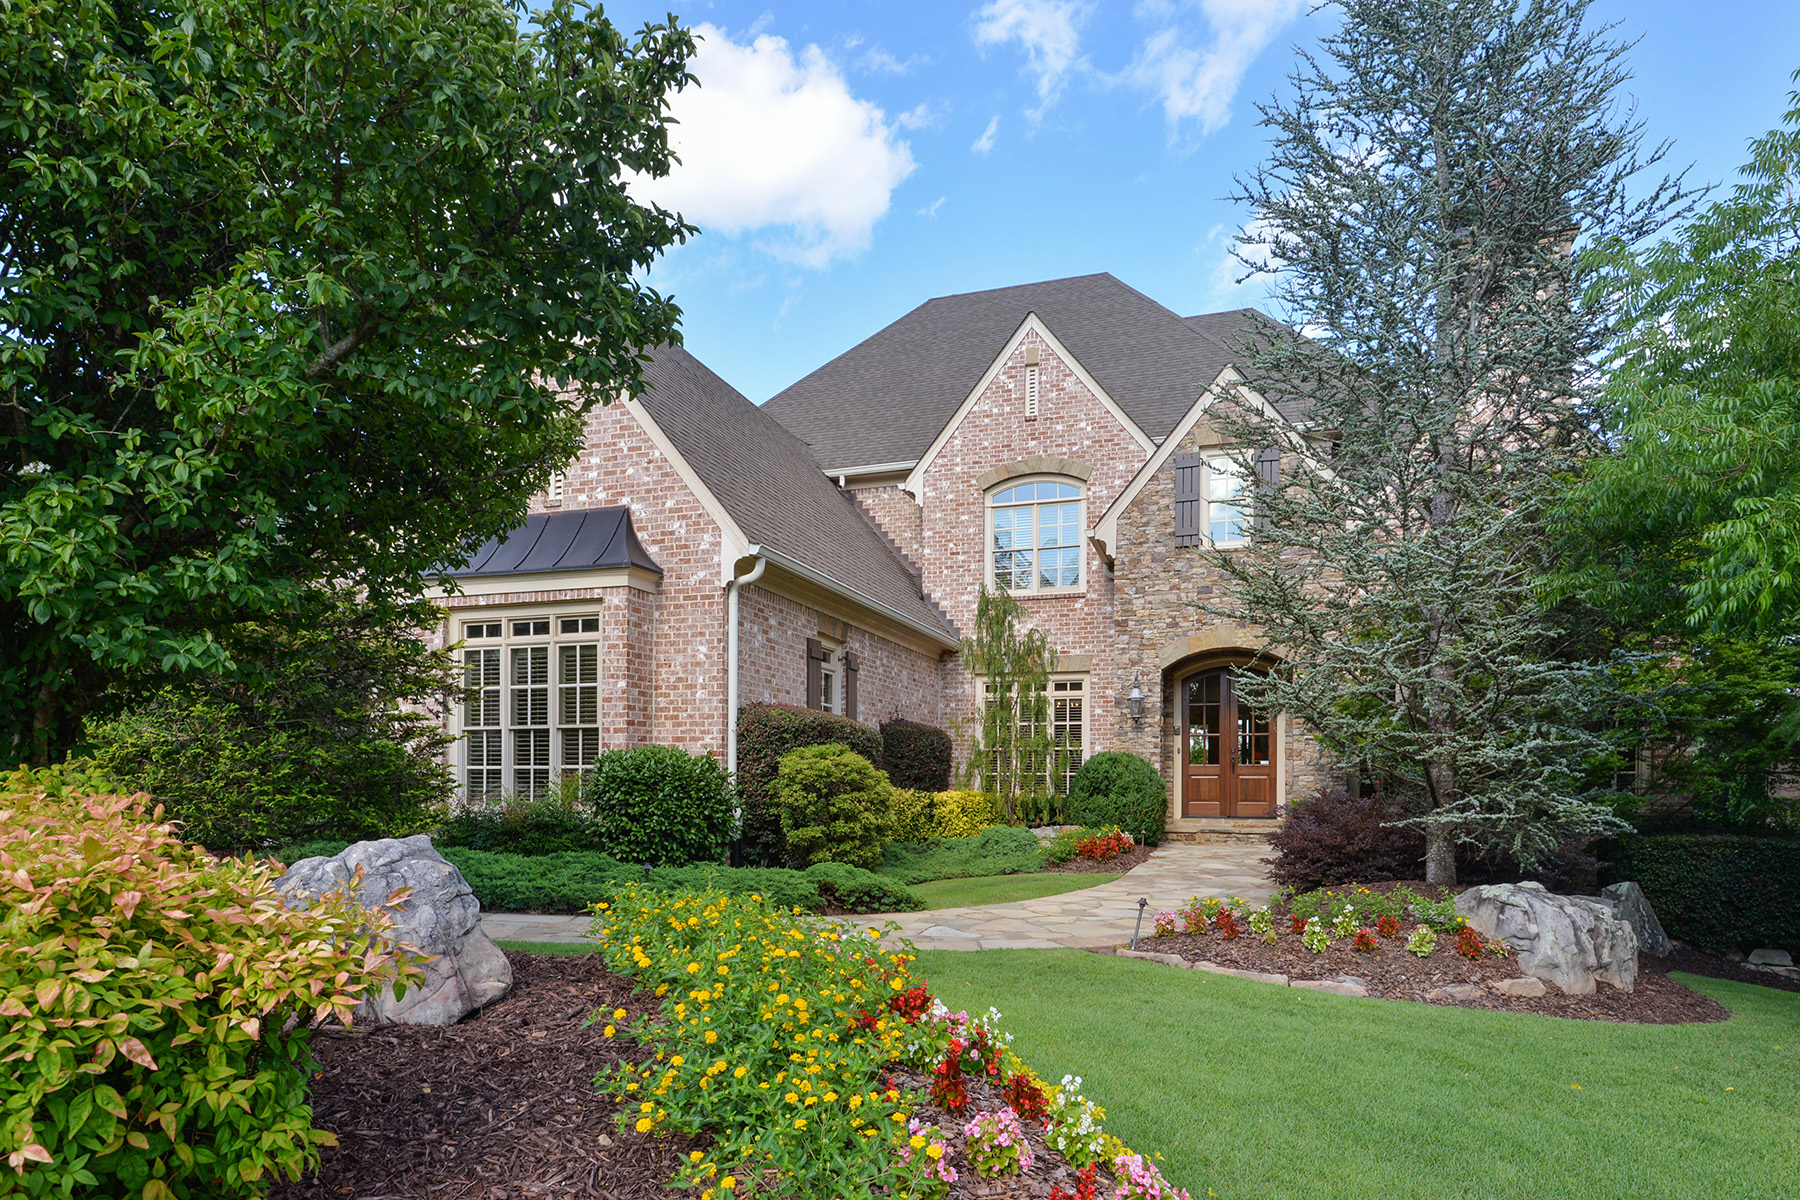 Single Family Homes for Active at Stunning Four-Sides Brick And Stone Executive Home 2210 Heathermoor Hill Drive Marietta, Georgia 30062 United States